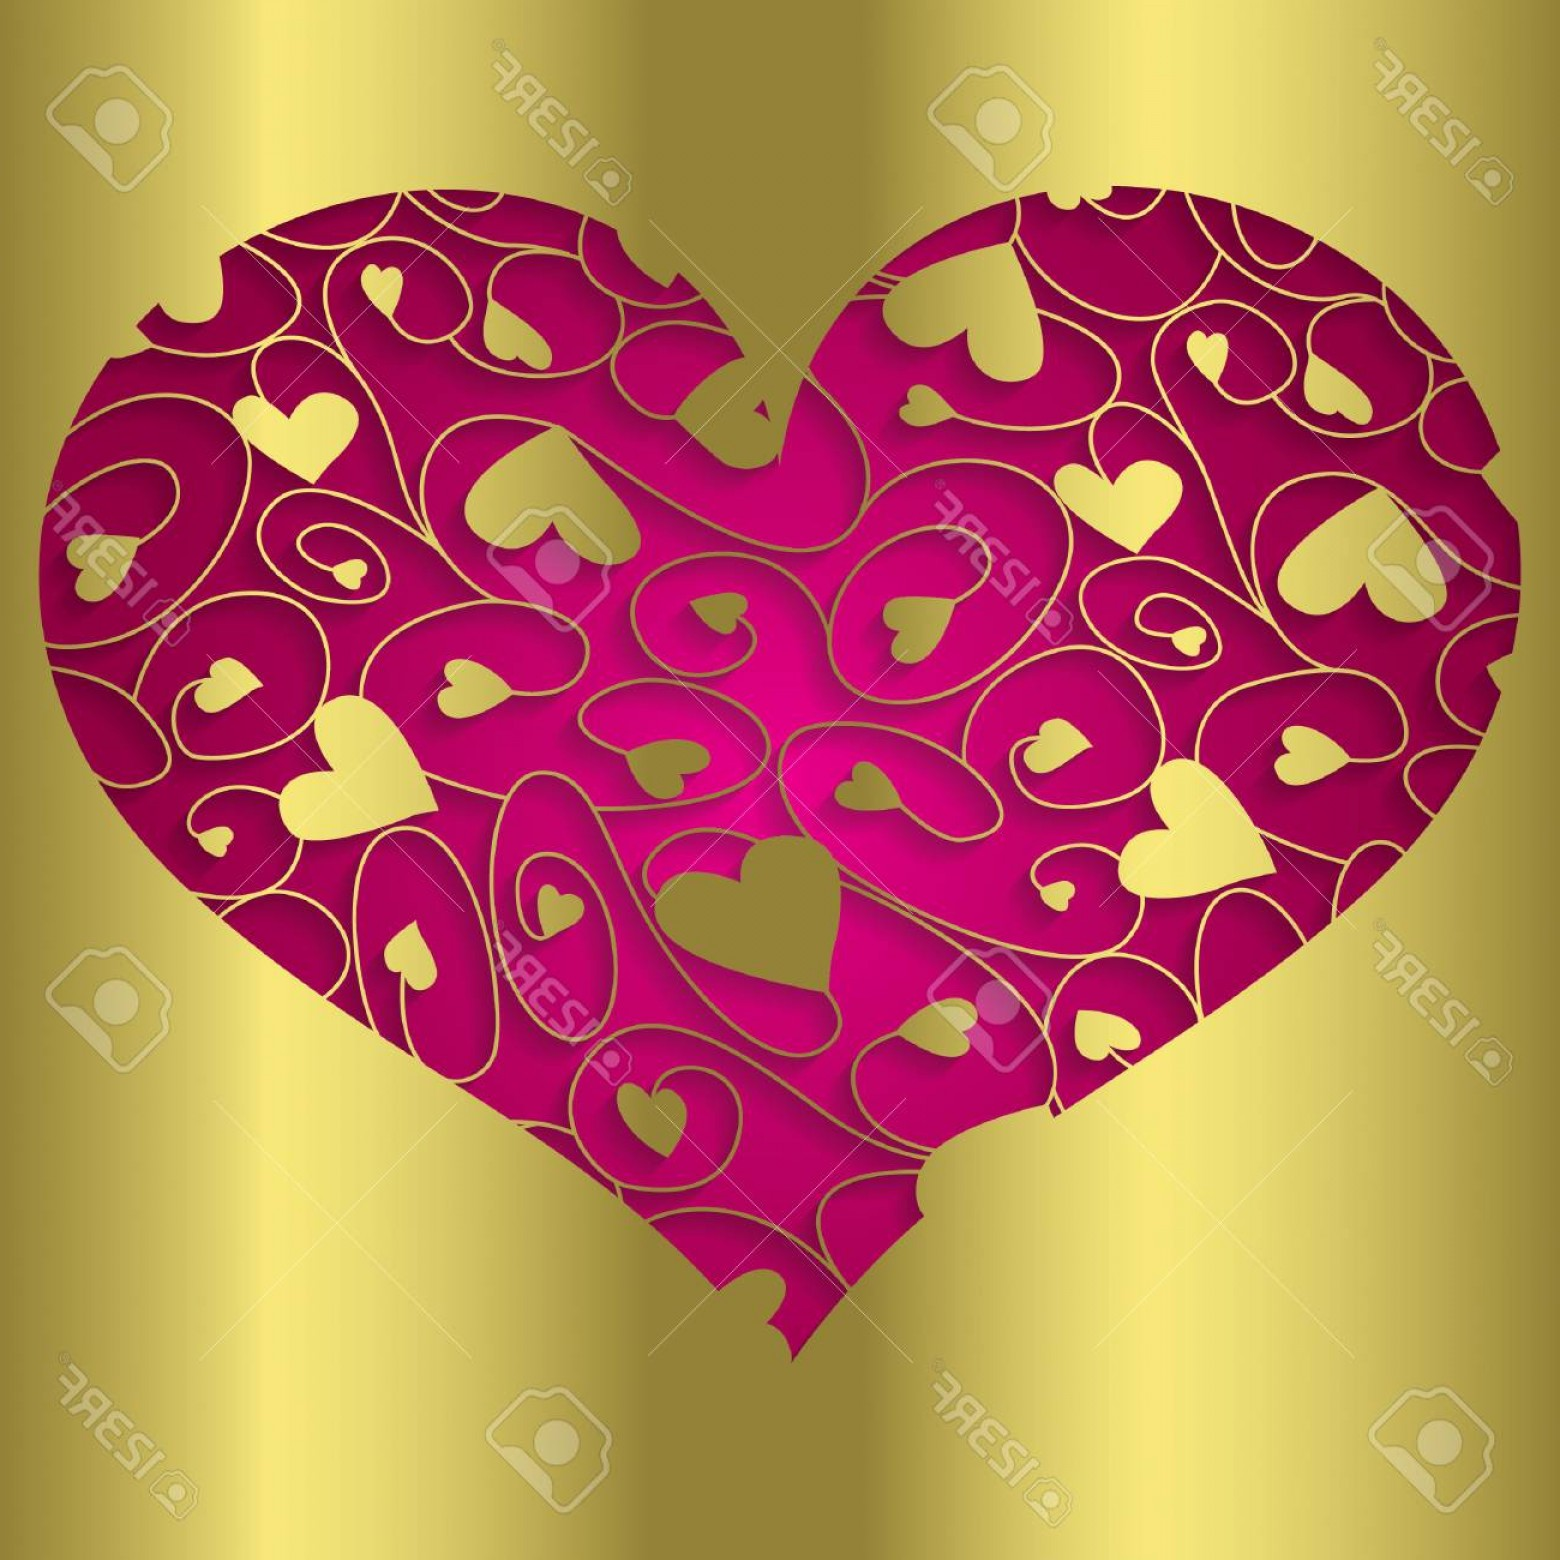 Vector Filigree Heart: Photostock Vector Elegant Cut Out Filigree Heart In Vector Format